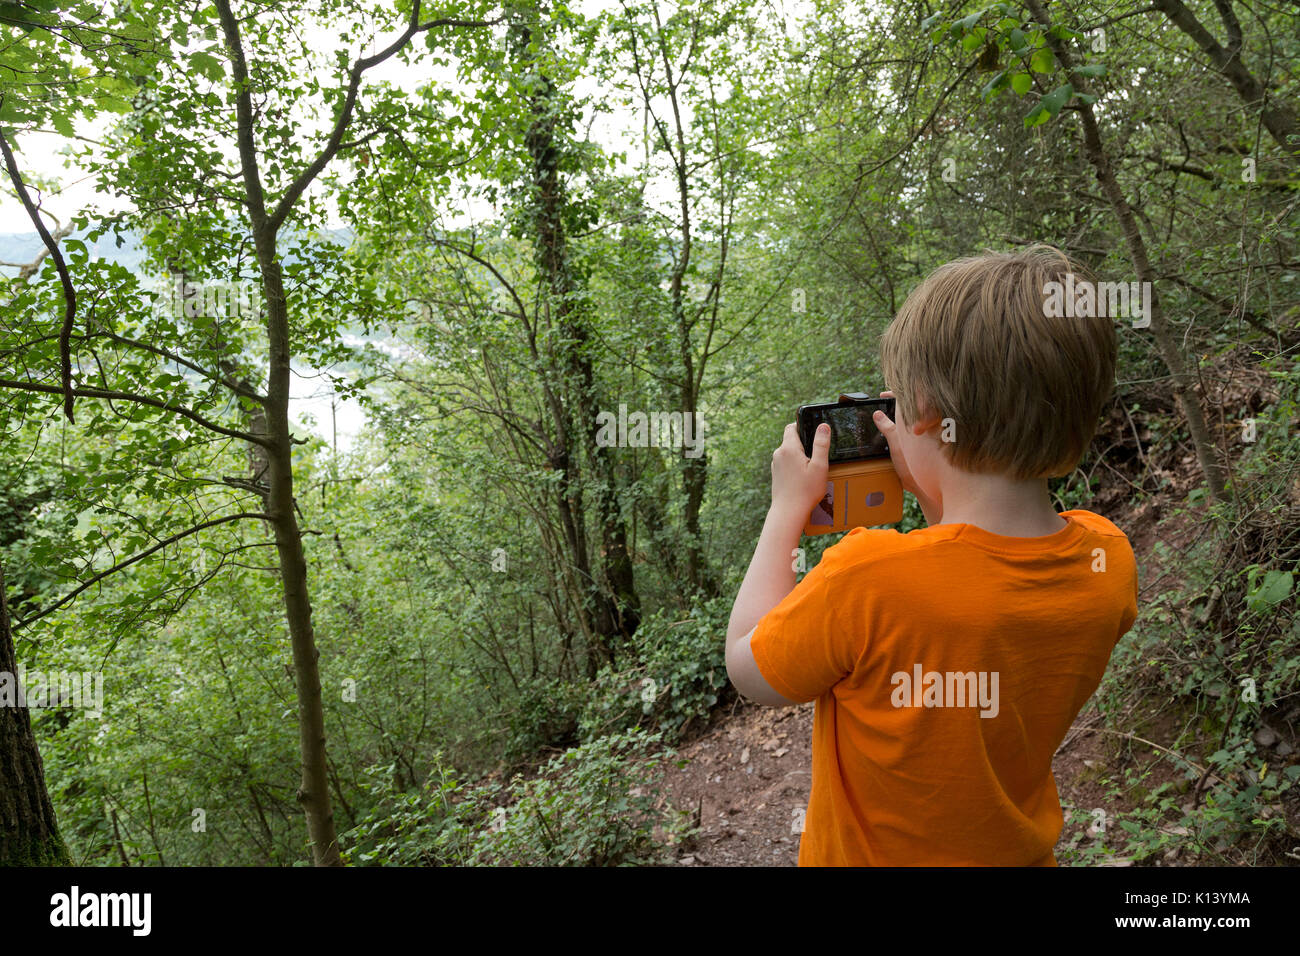 young boy taking photos on fixed rope route, Uerzig, Moselle, Rhineland-Palatinate, Germany - Stock Image